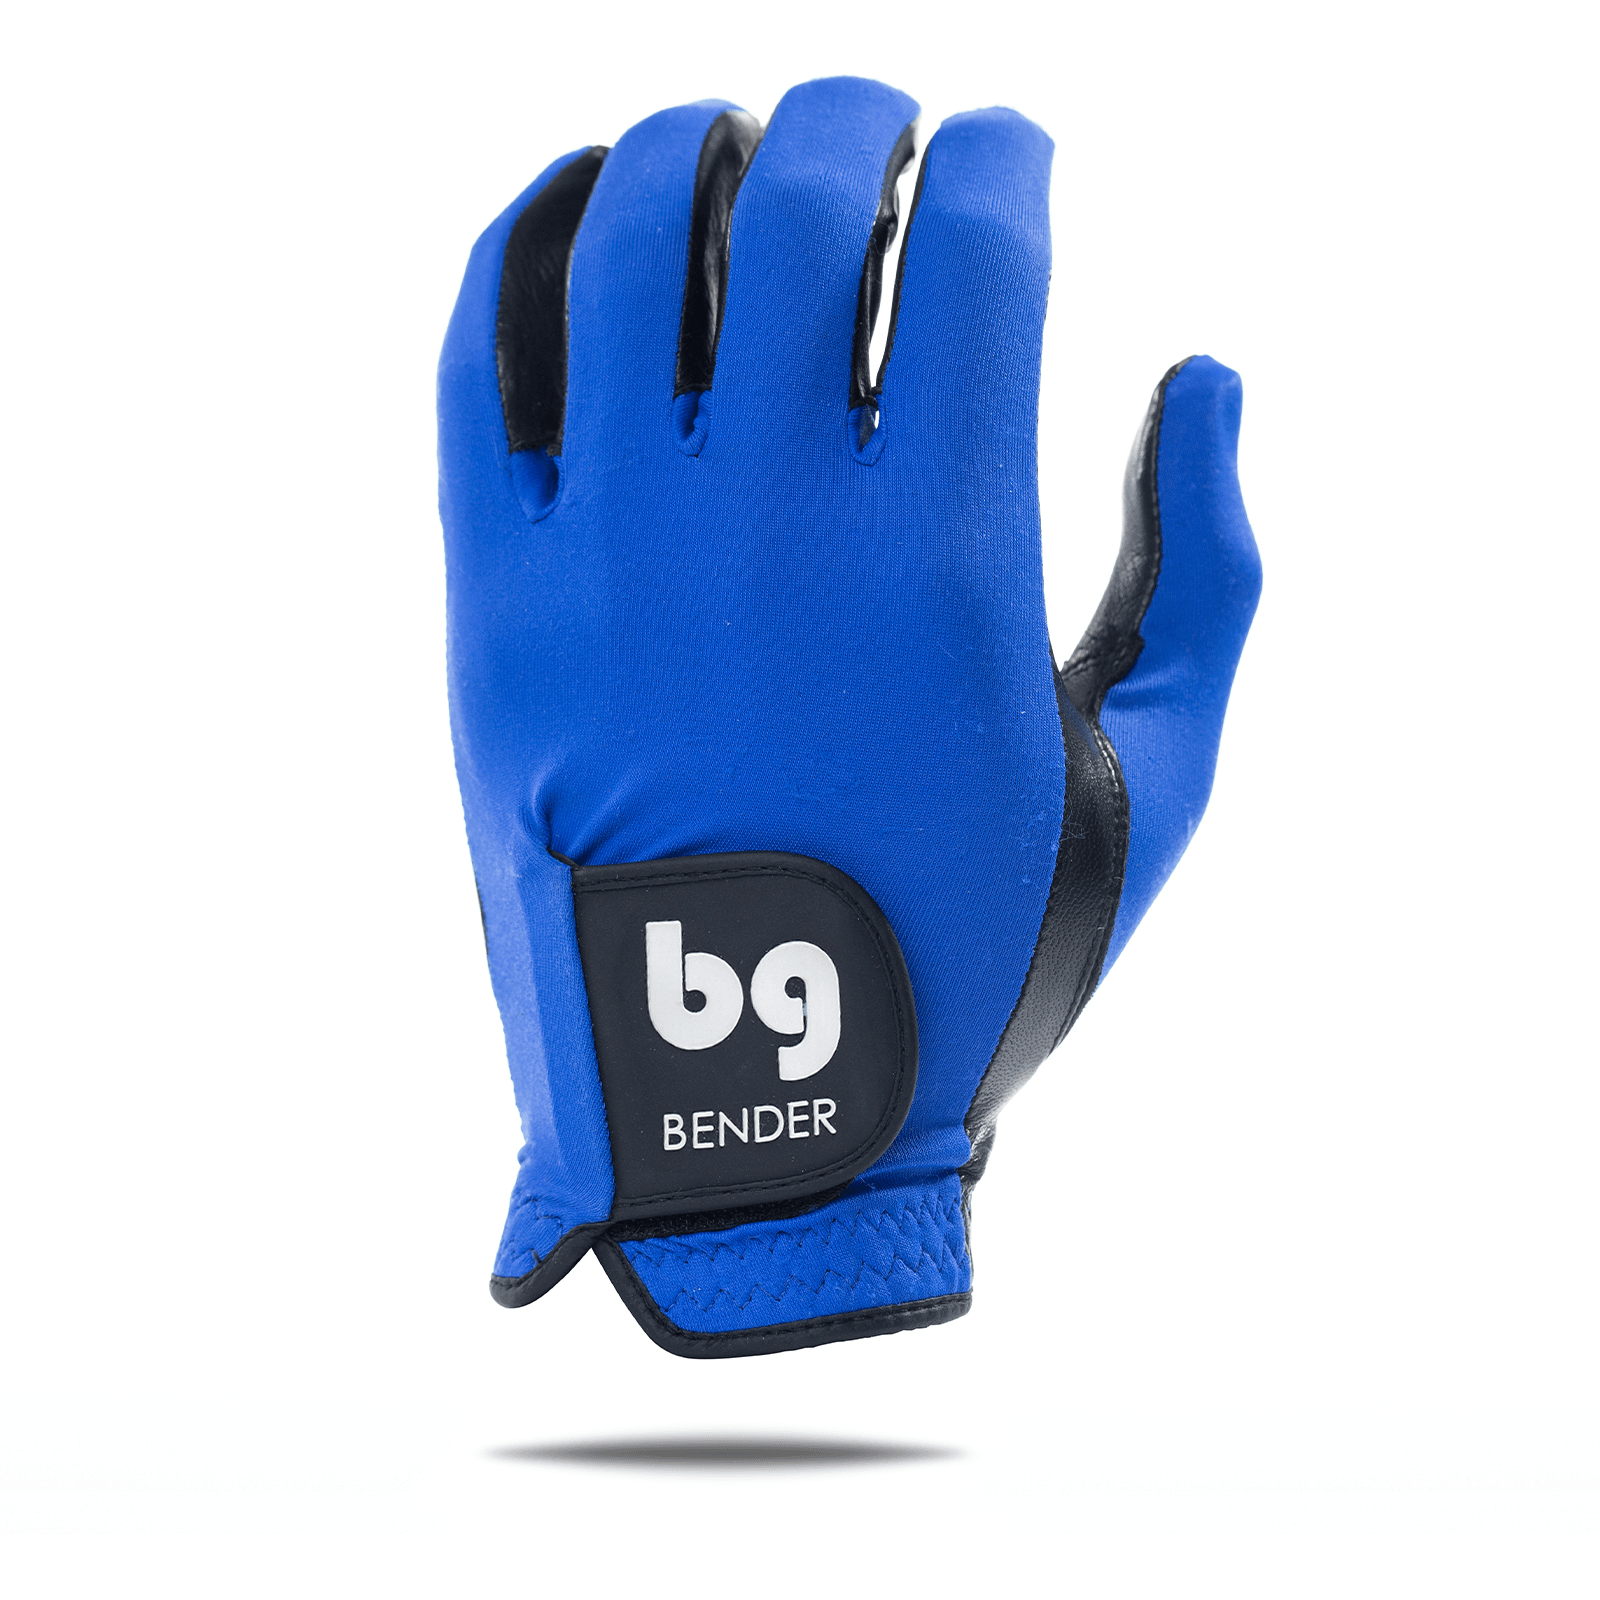 Blue Spandex Golf Glove